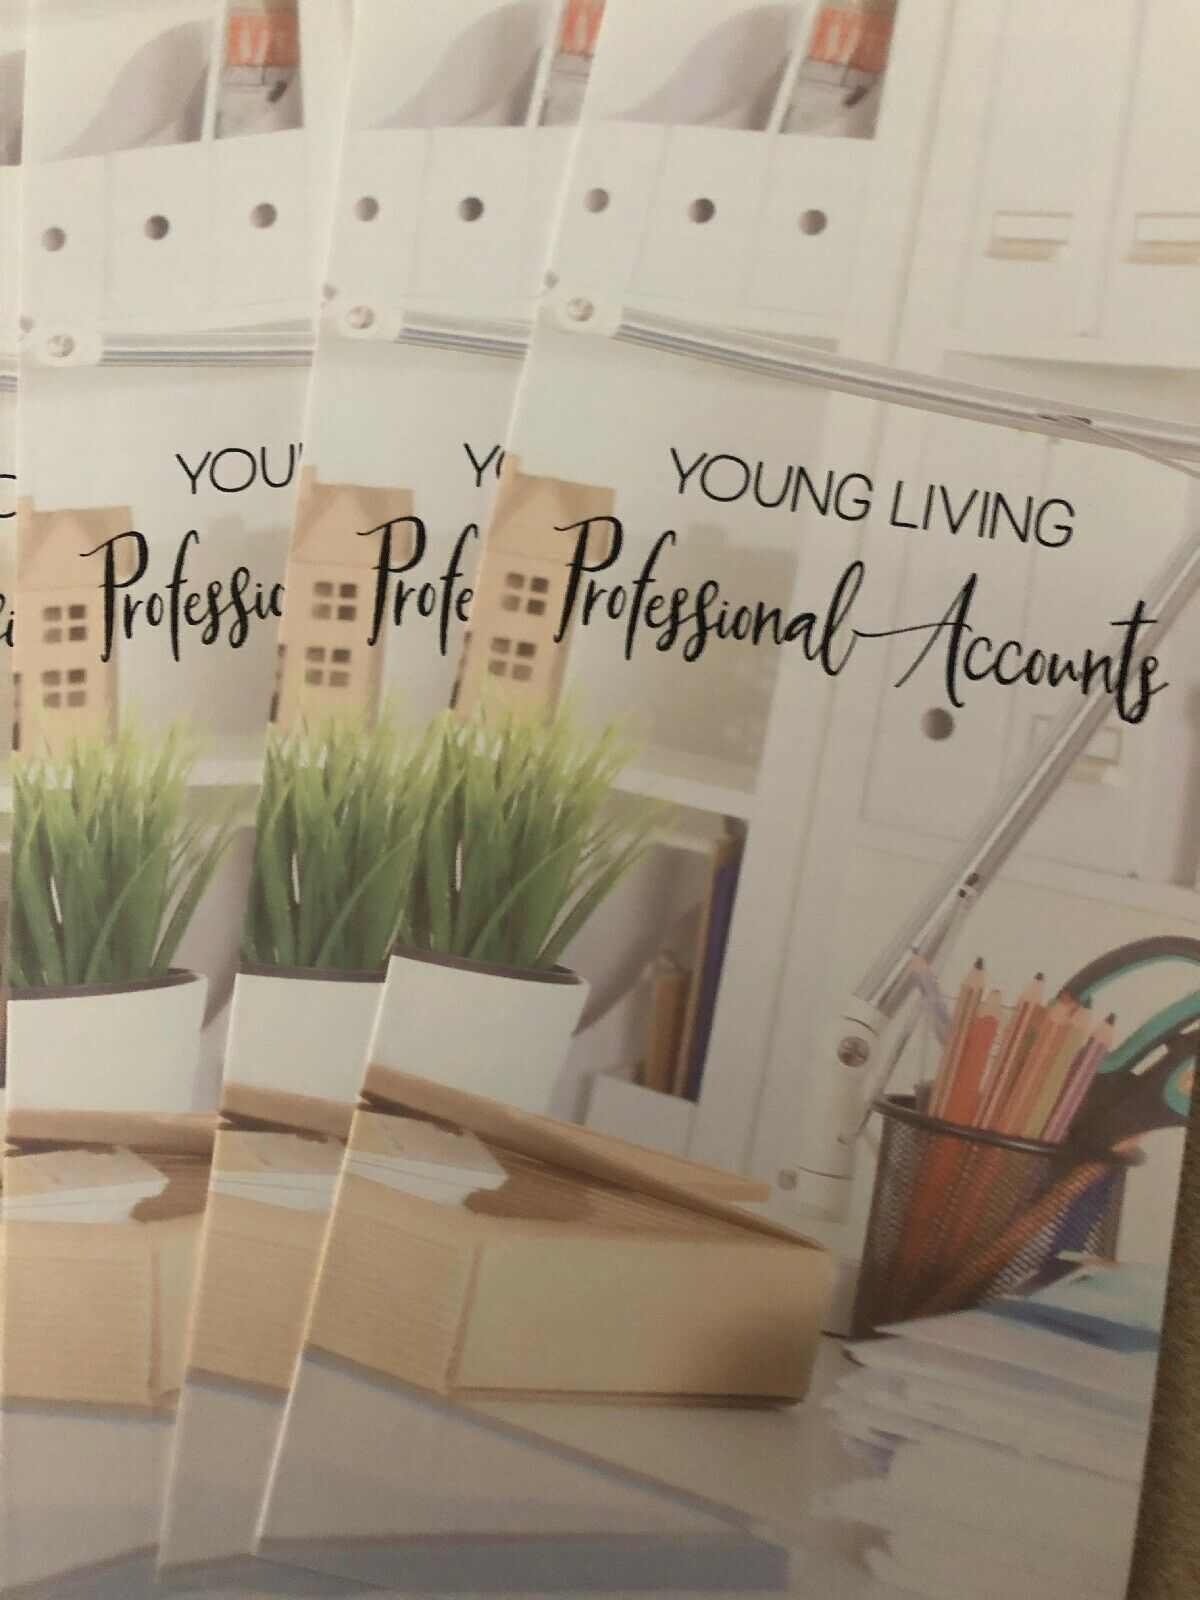 Primary image for 5 Young Living Professional Account Brochures